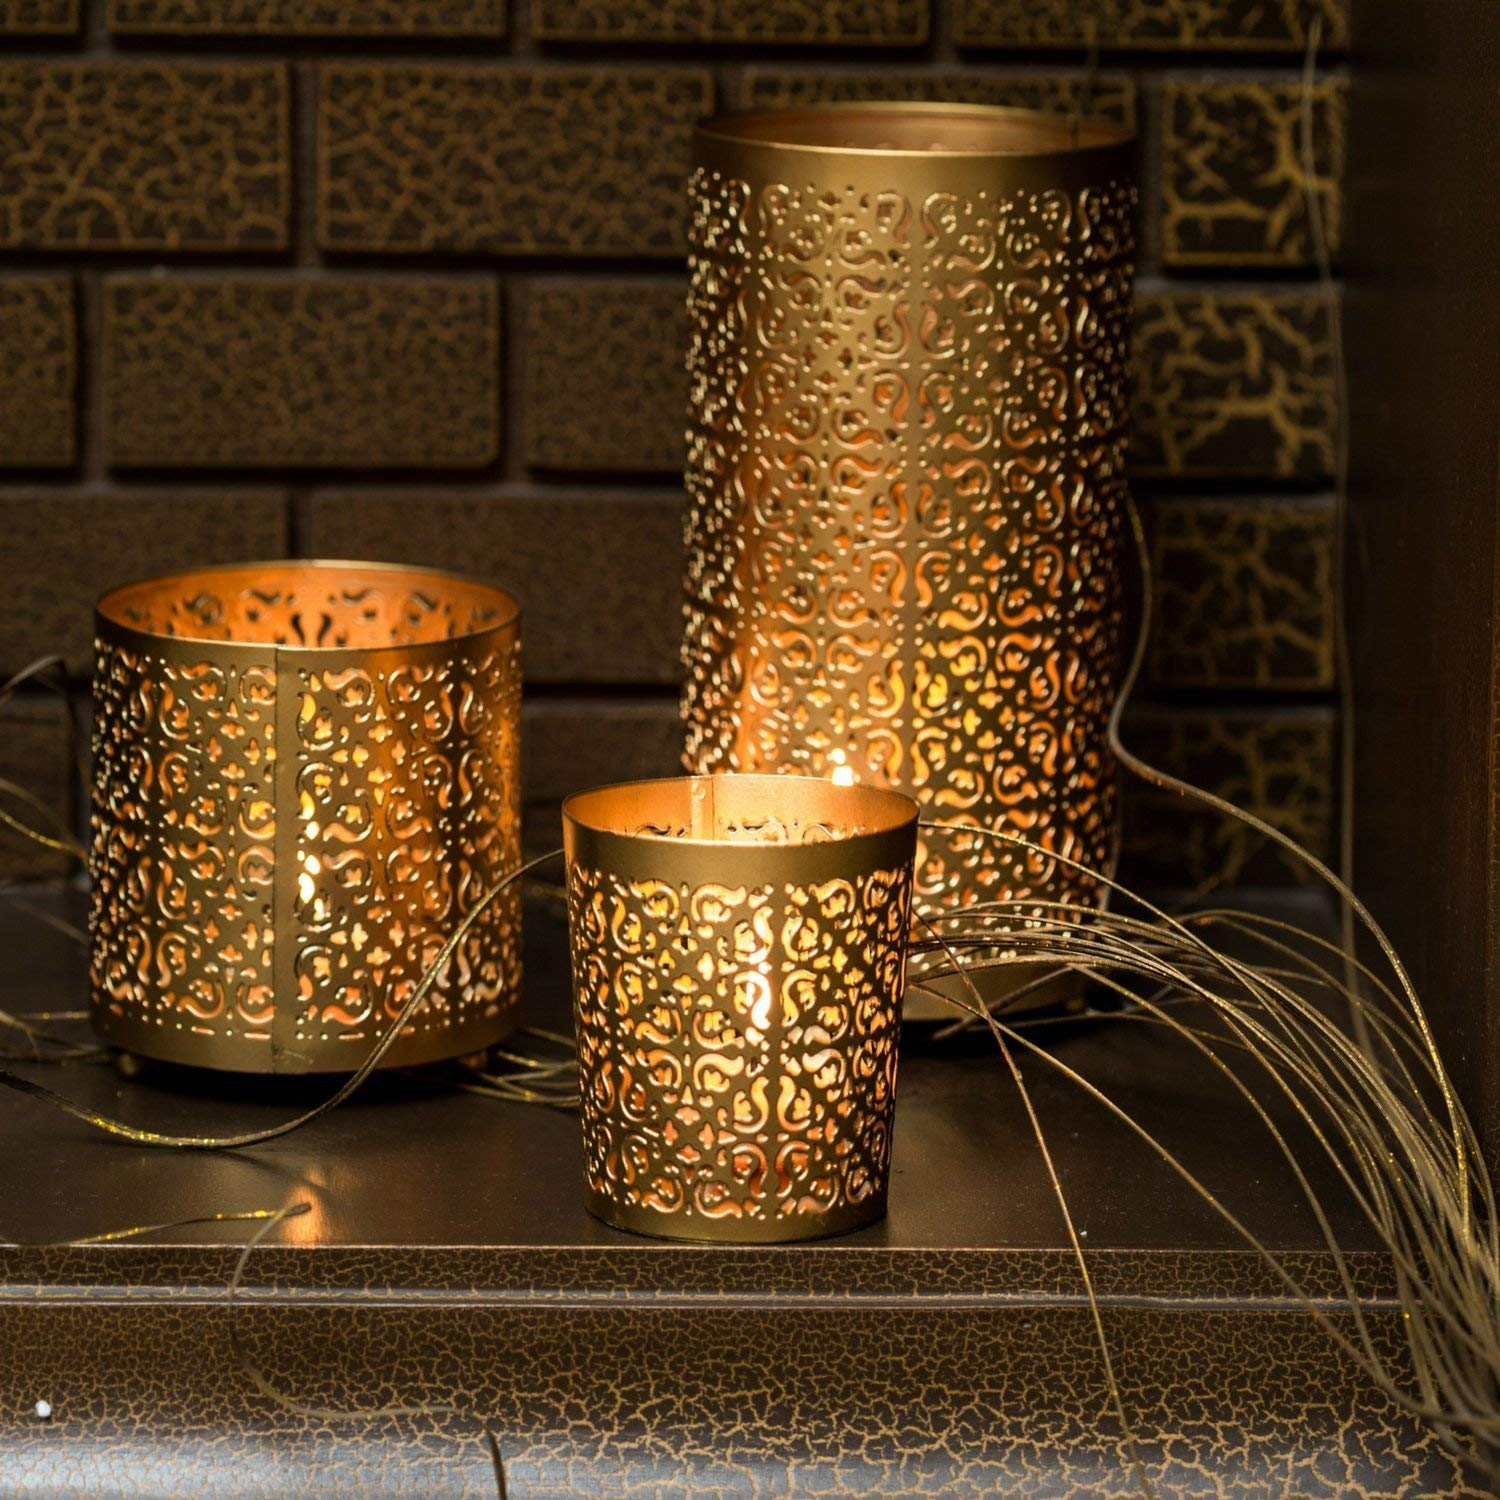 KRIXOT Candle Holders Set of 3 in Metallic Gold with Beautiful Flickering Reflections | Complimentary 3 Glass Votive Candles | Ideal for Gifting, Home Decor and Wedding Decorations